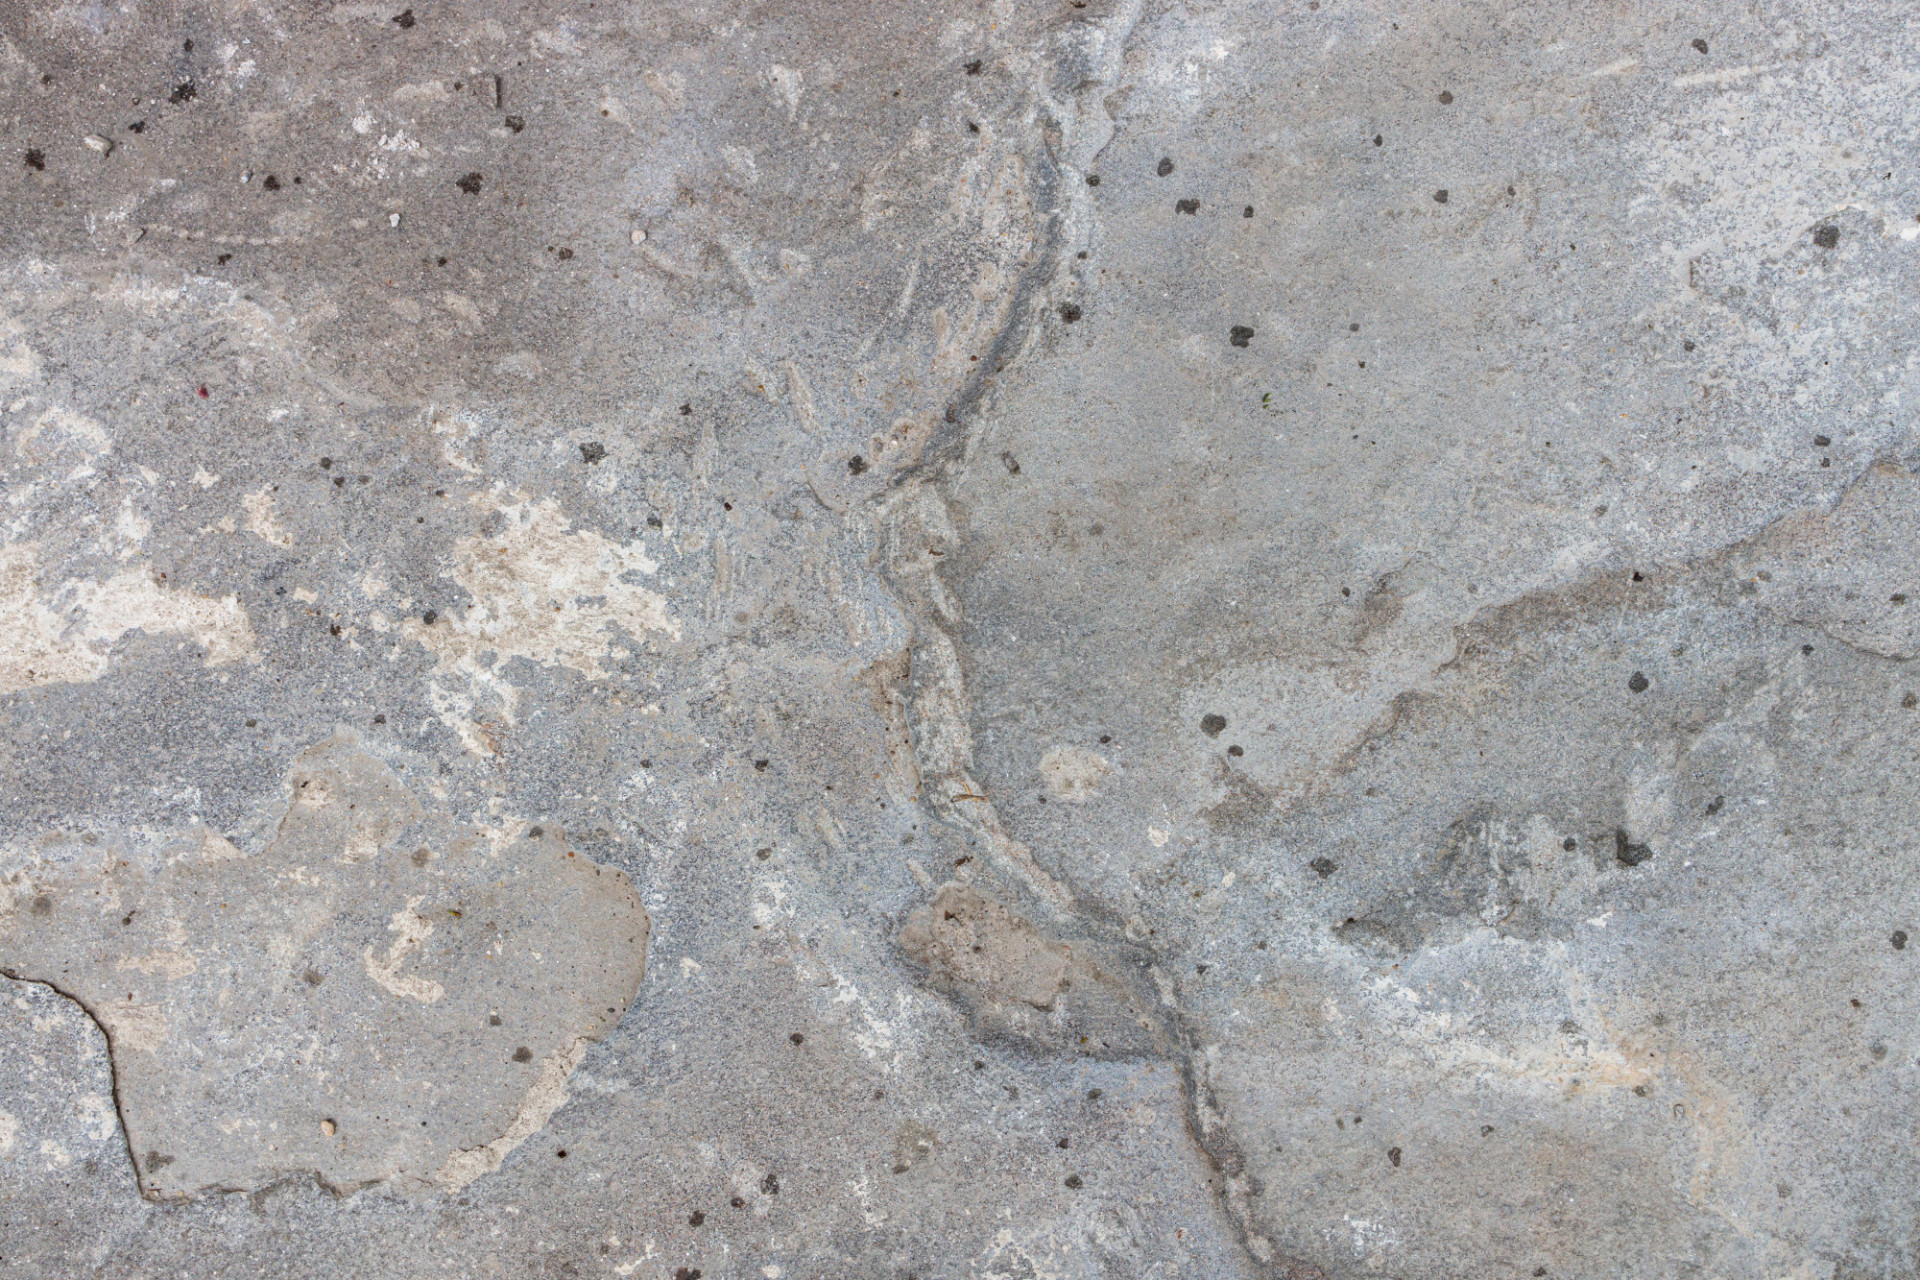 Weathered Concrete Stone Texture with cracks